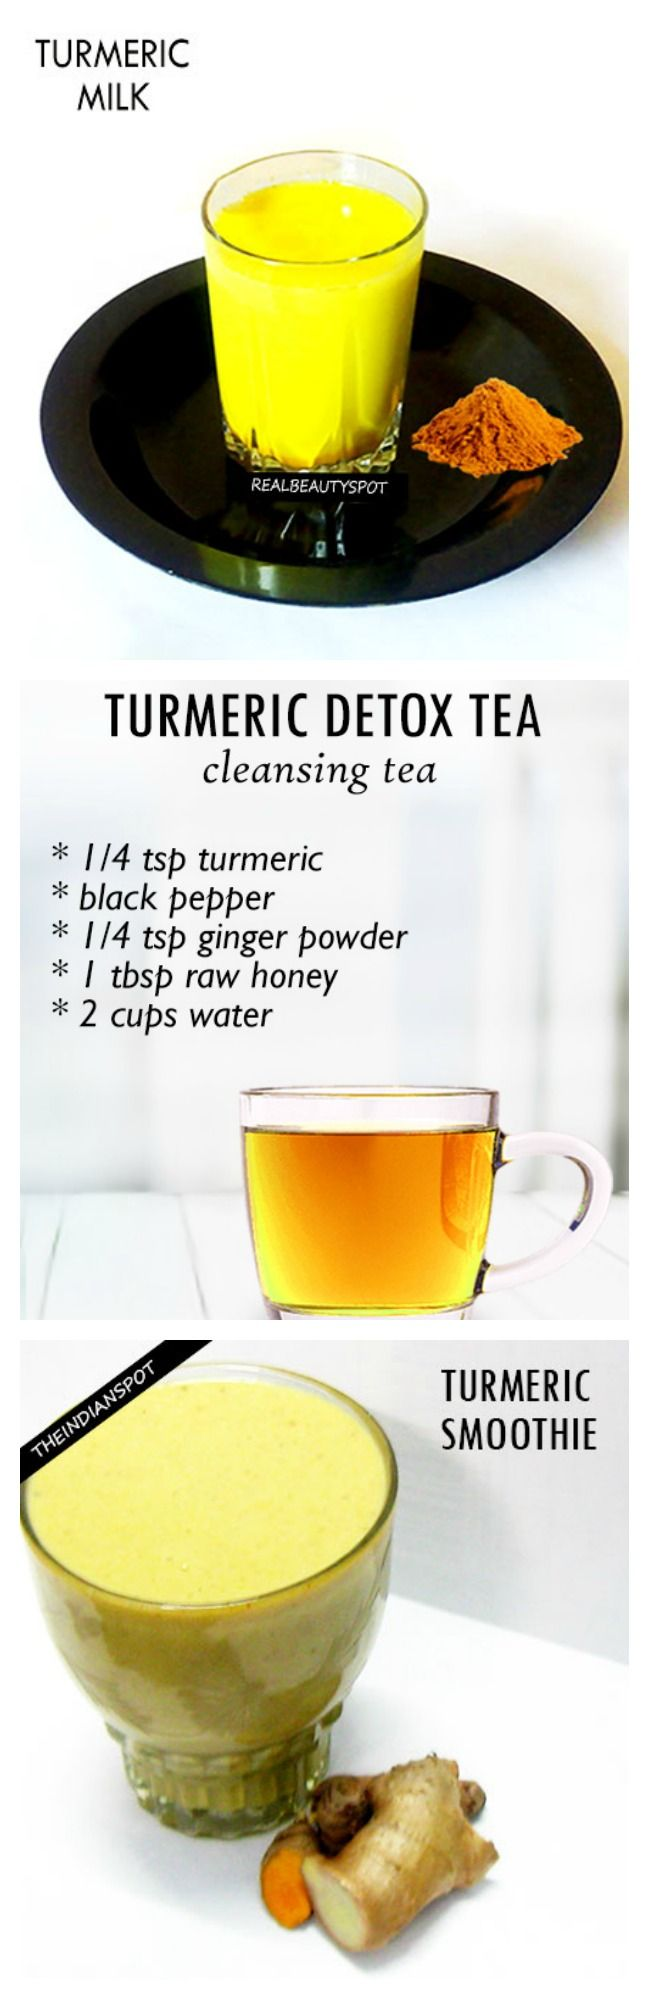 TOP TURMERIC DRINK RECIPES FOR HEALTH AND BEAUTY